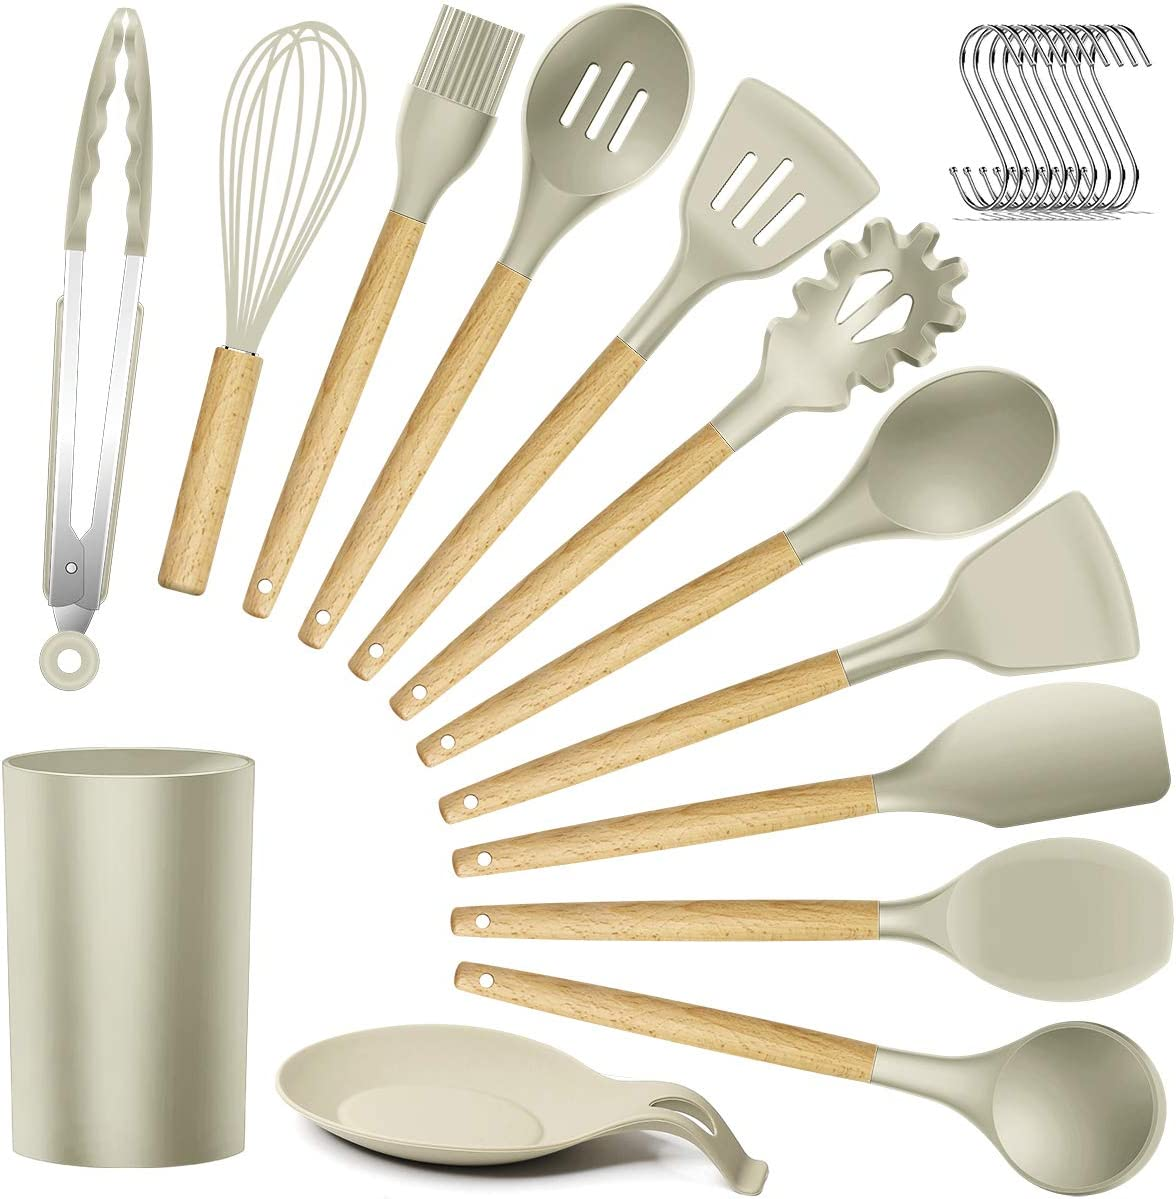 Silicone Kitchen Utensils Cooking Utensil Set - Cooking Utensils Tools with Wooden Handles Include Turner Tongs Spatula Spoon for Nonstick Cookware Non-Toxic Heat Resistant (13 PCS)